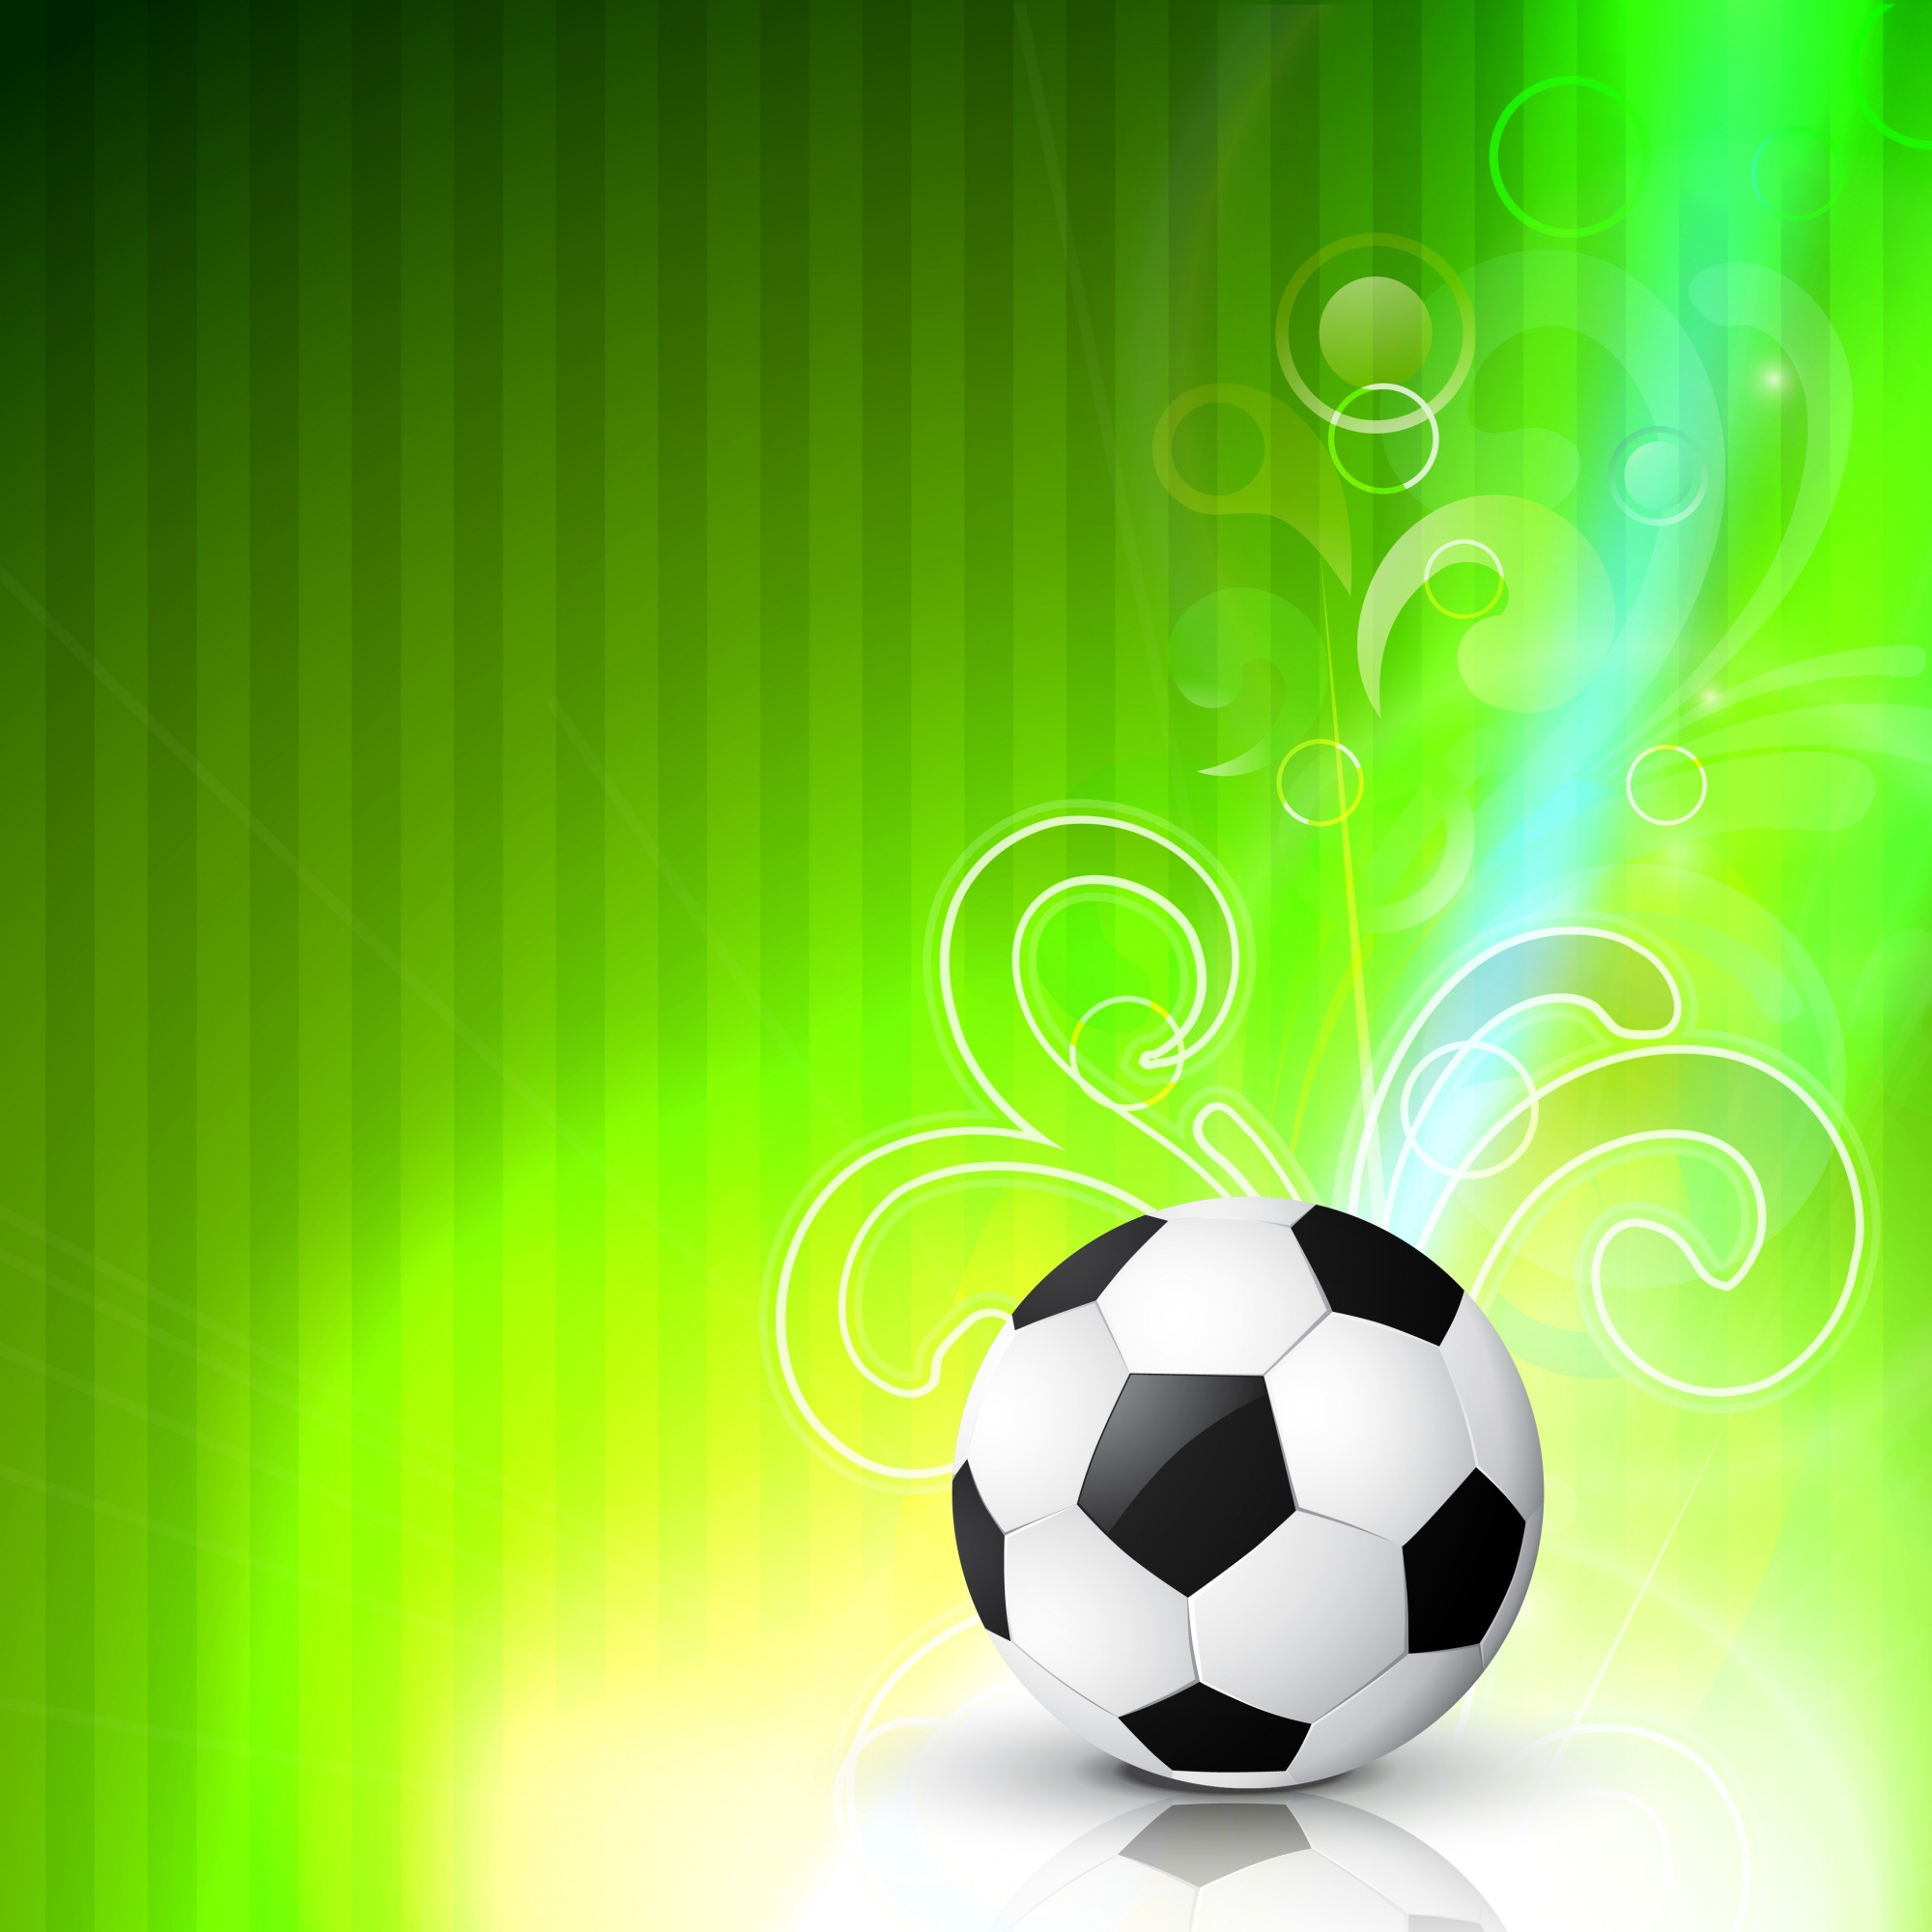 Vecteur football design art sur fond vert